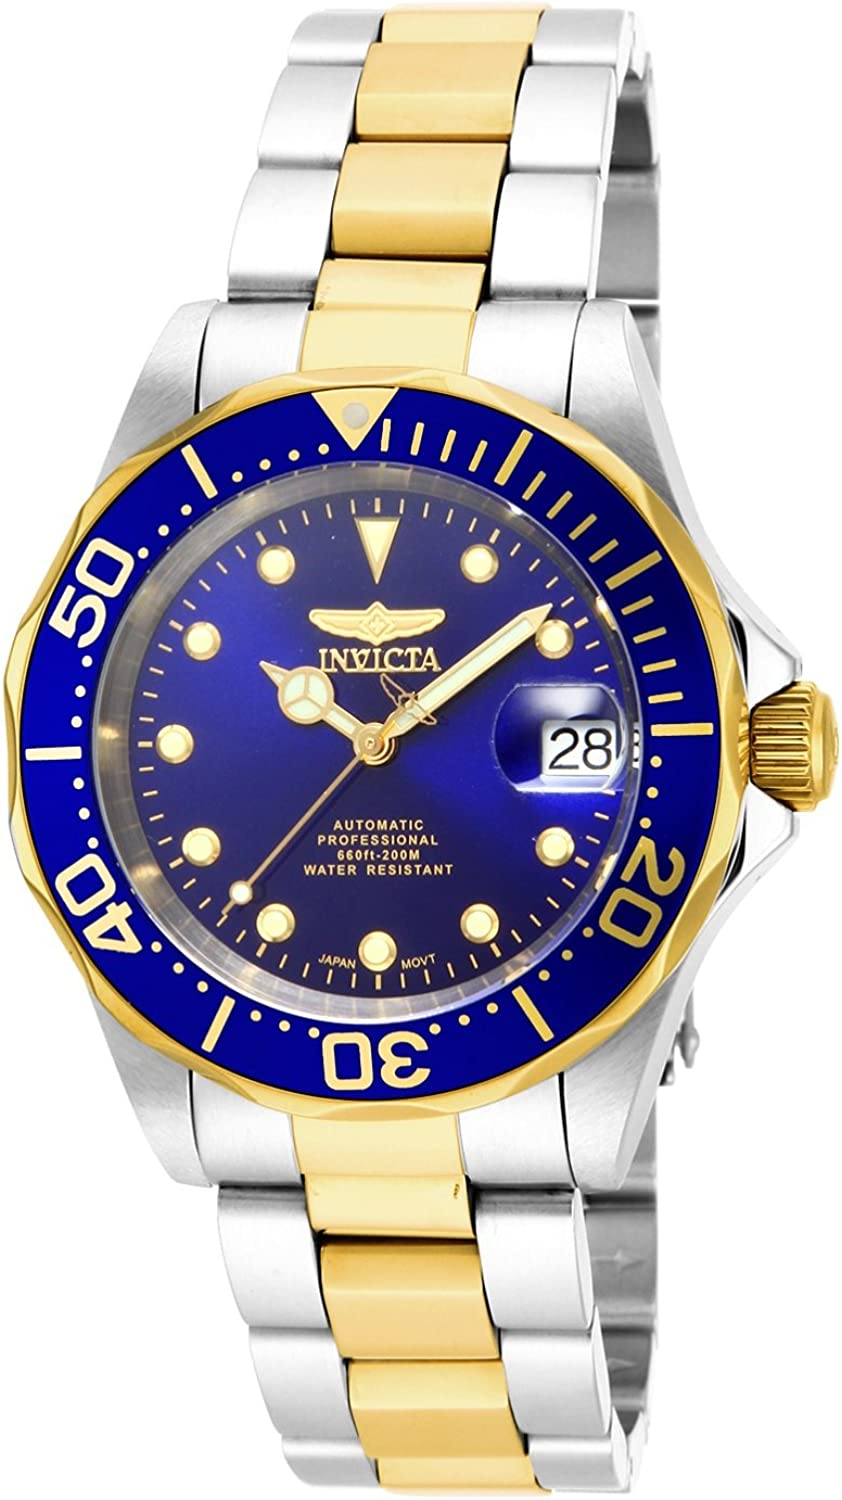 Invicta Men s 17042 Pro Diver Analog Display Japanese Automatic Two Tone Watch